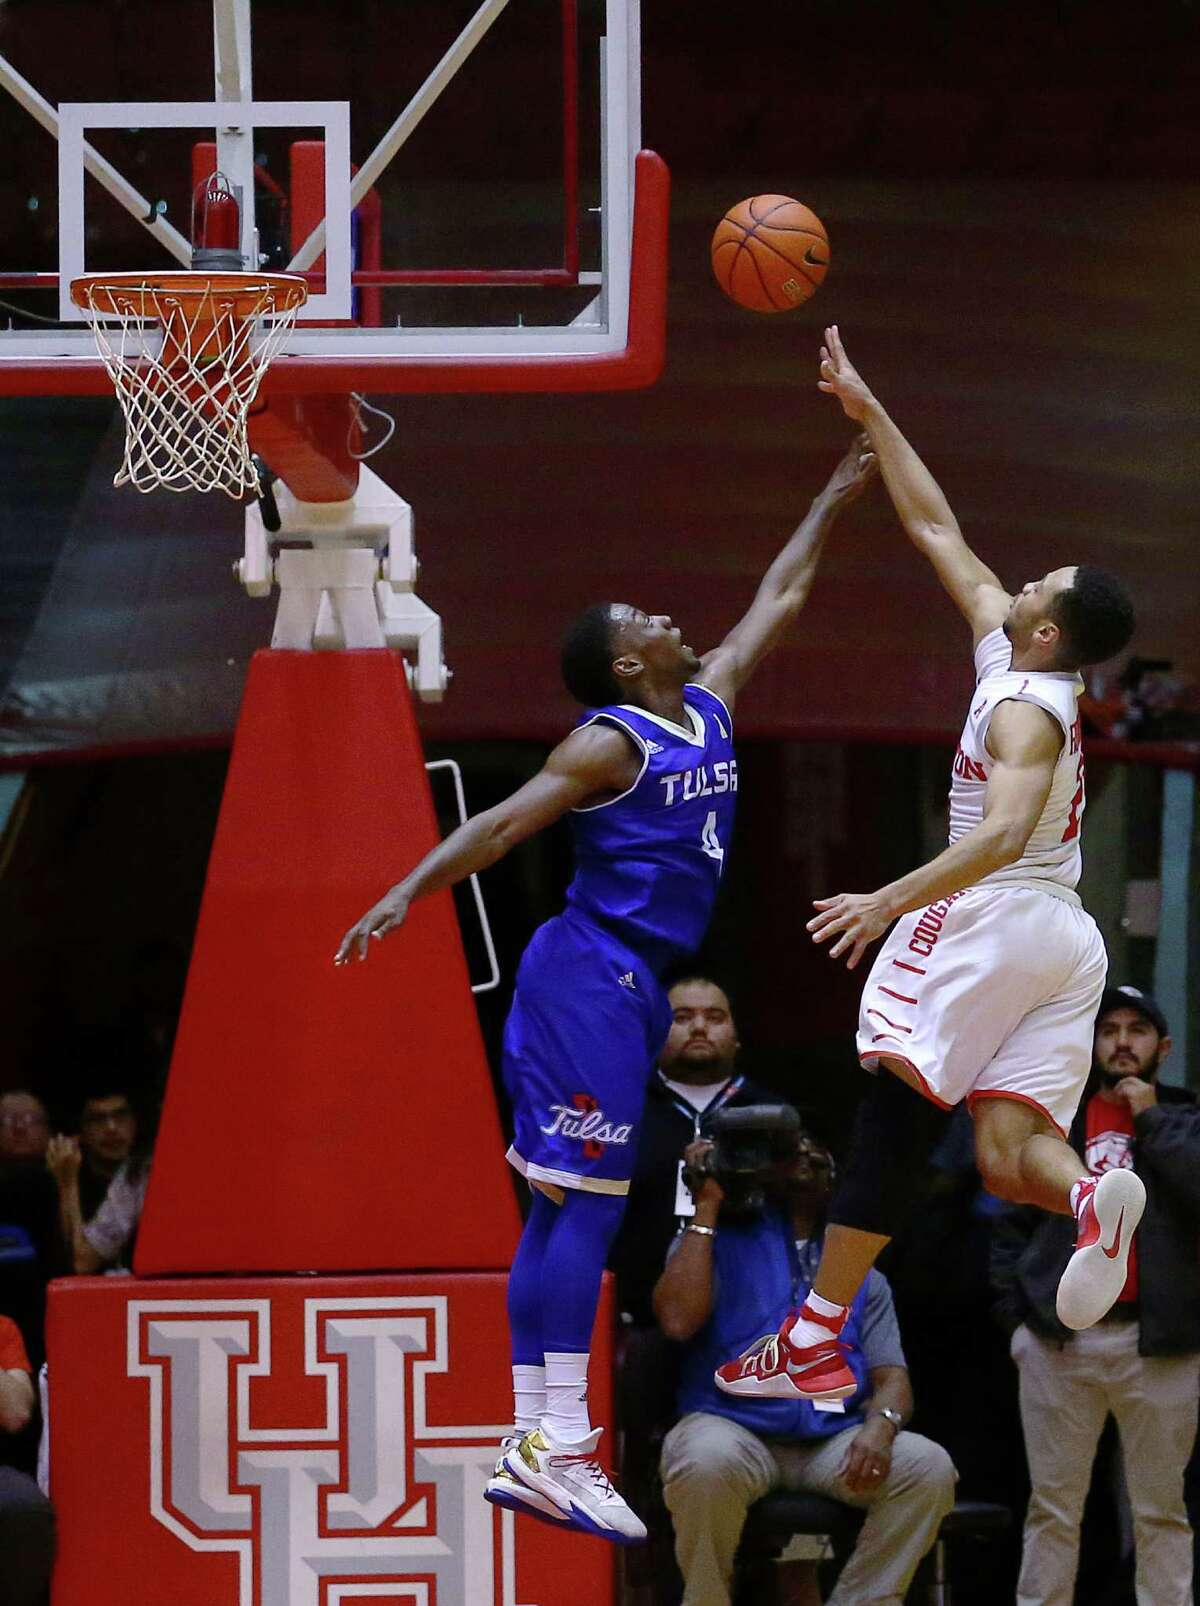 Tulsa Golden Hurricane guard Sterling Taplin (4) tries to block a shot from Houston Cougars guard Galen Robinson Jr. (25) during the second half of a basketball game at Hofheinz Pavilion, on the University of Houston campus, Wednesday, Jan. 4, 2017, in Houston.